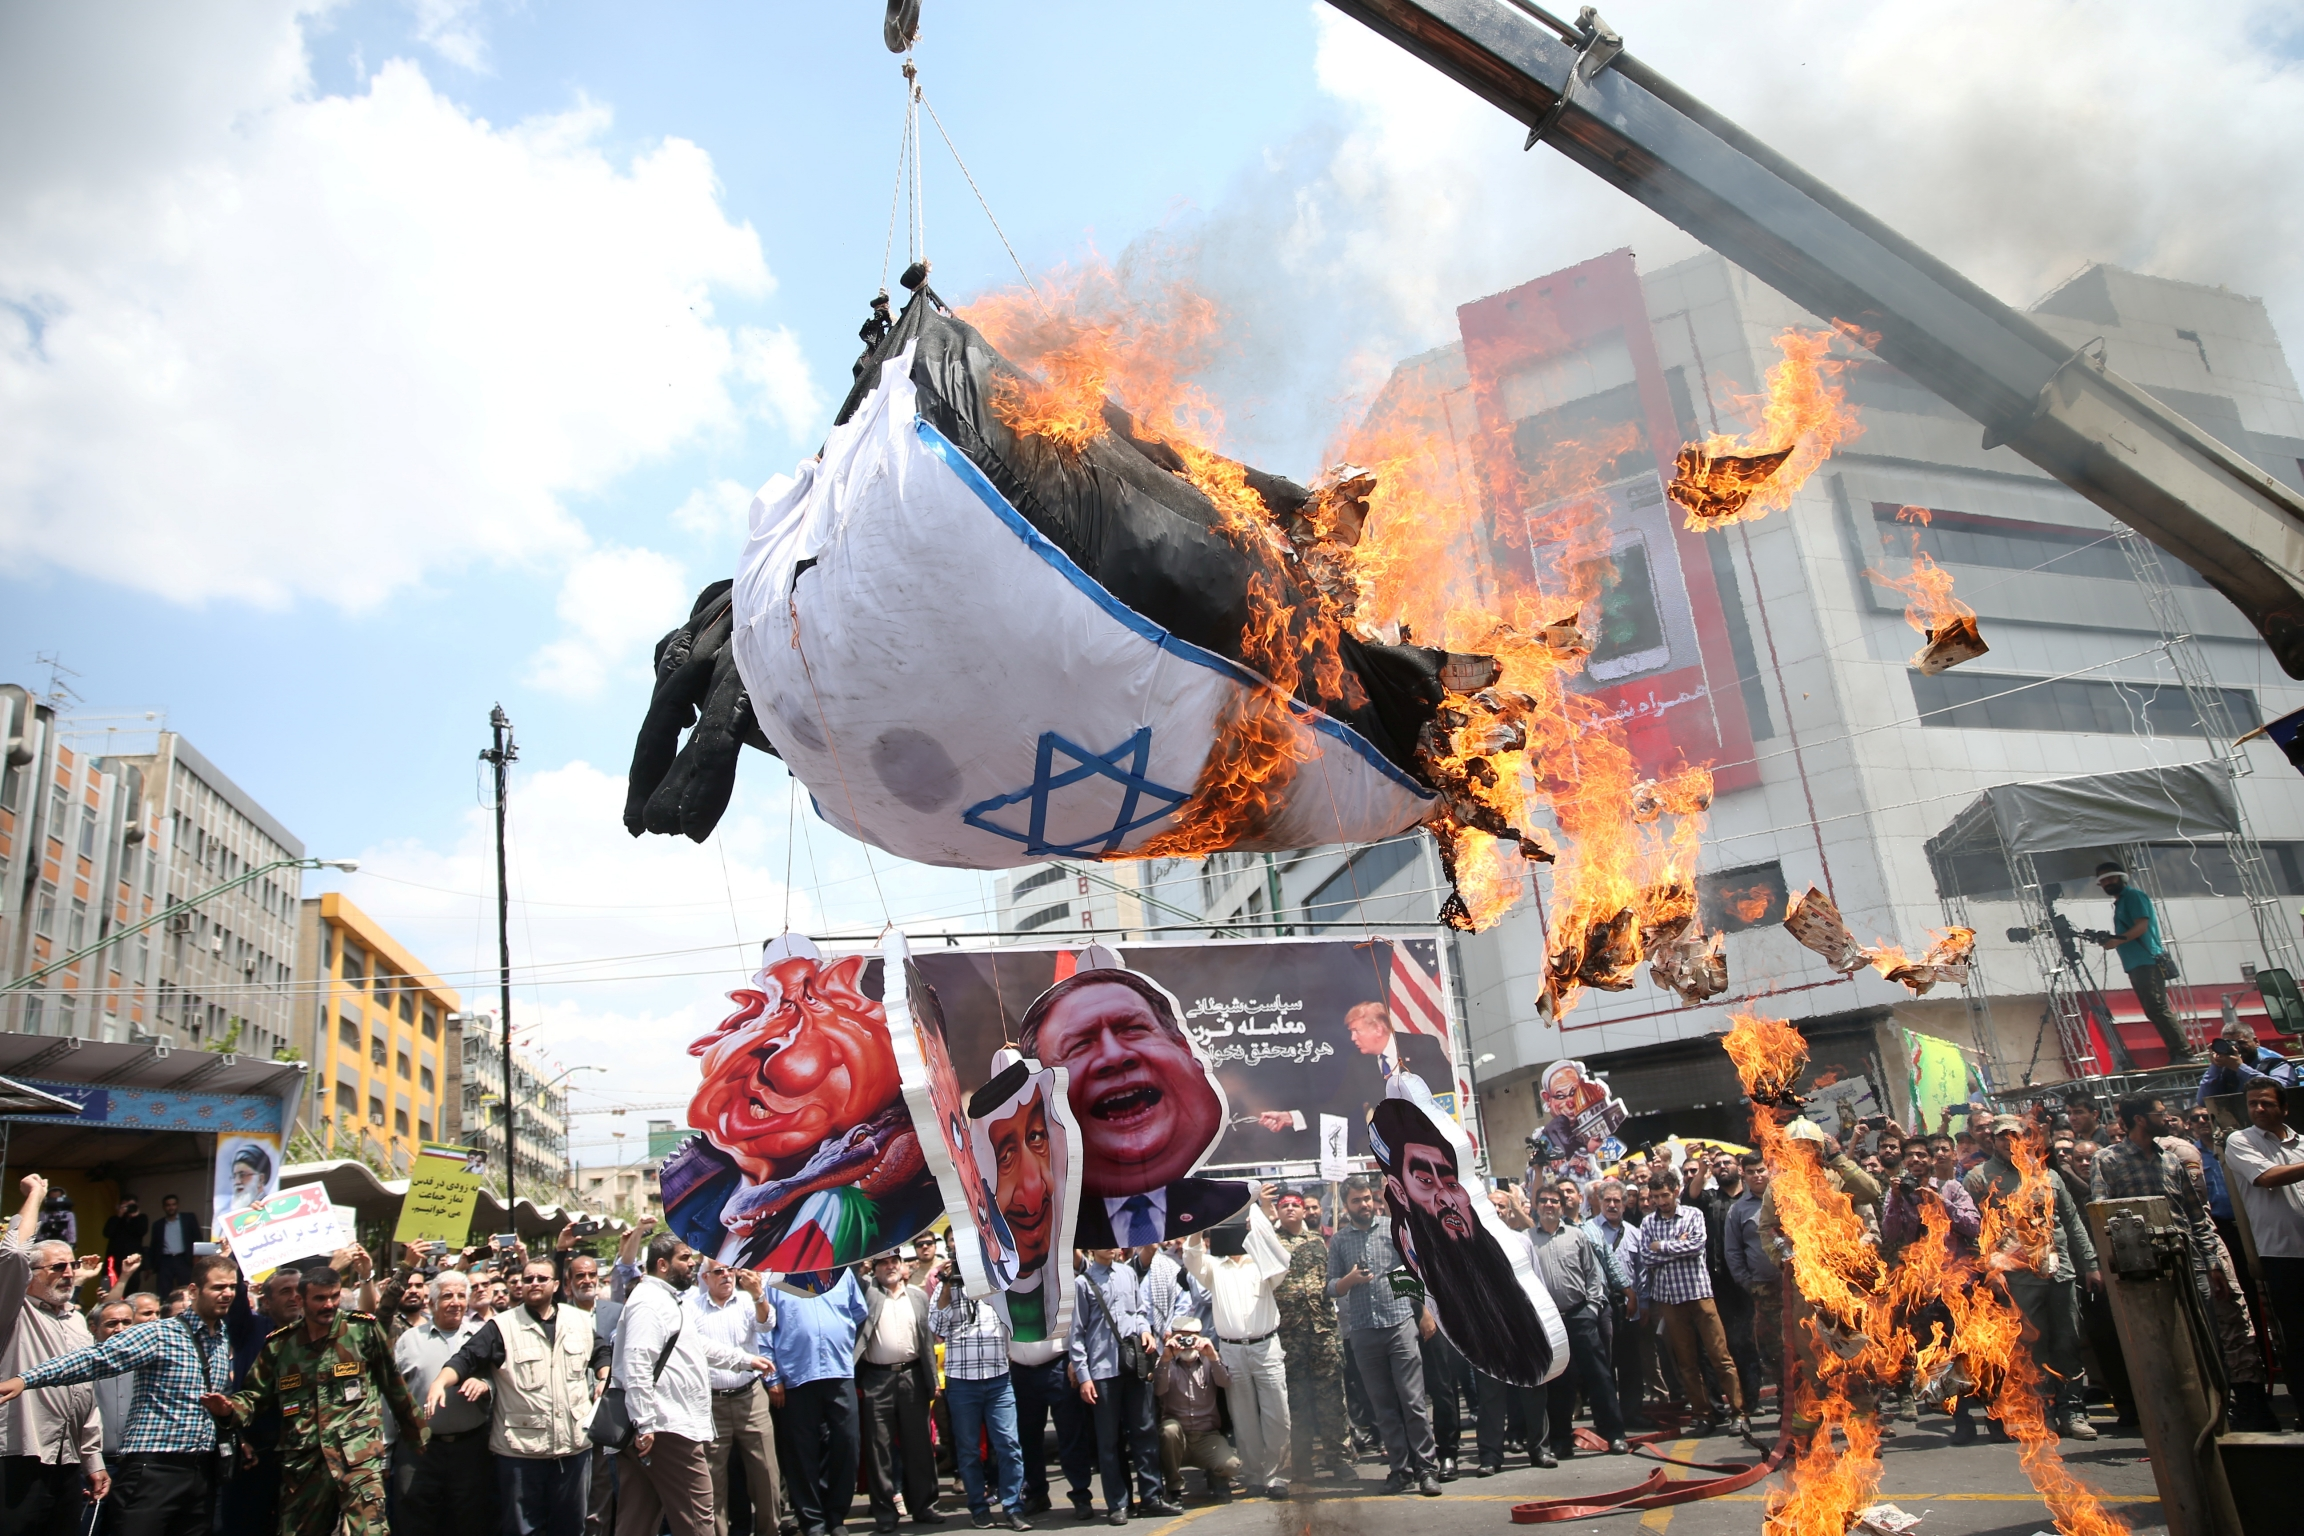 Iranians burn an Israeli flag during a protest marking the annual al-Quds Day (Jerusalem Day) on the last Friday of the holy month of Ramadan in Tehran, Iran May 31, 2019.